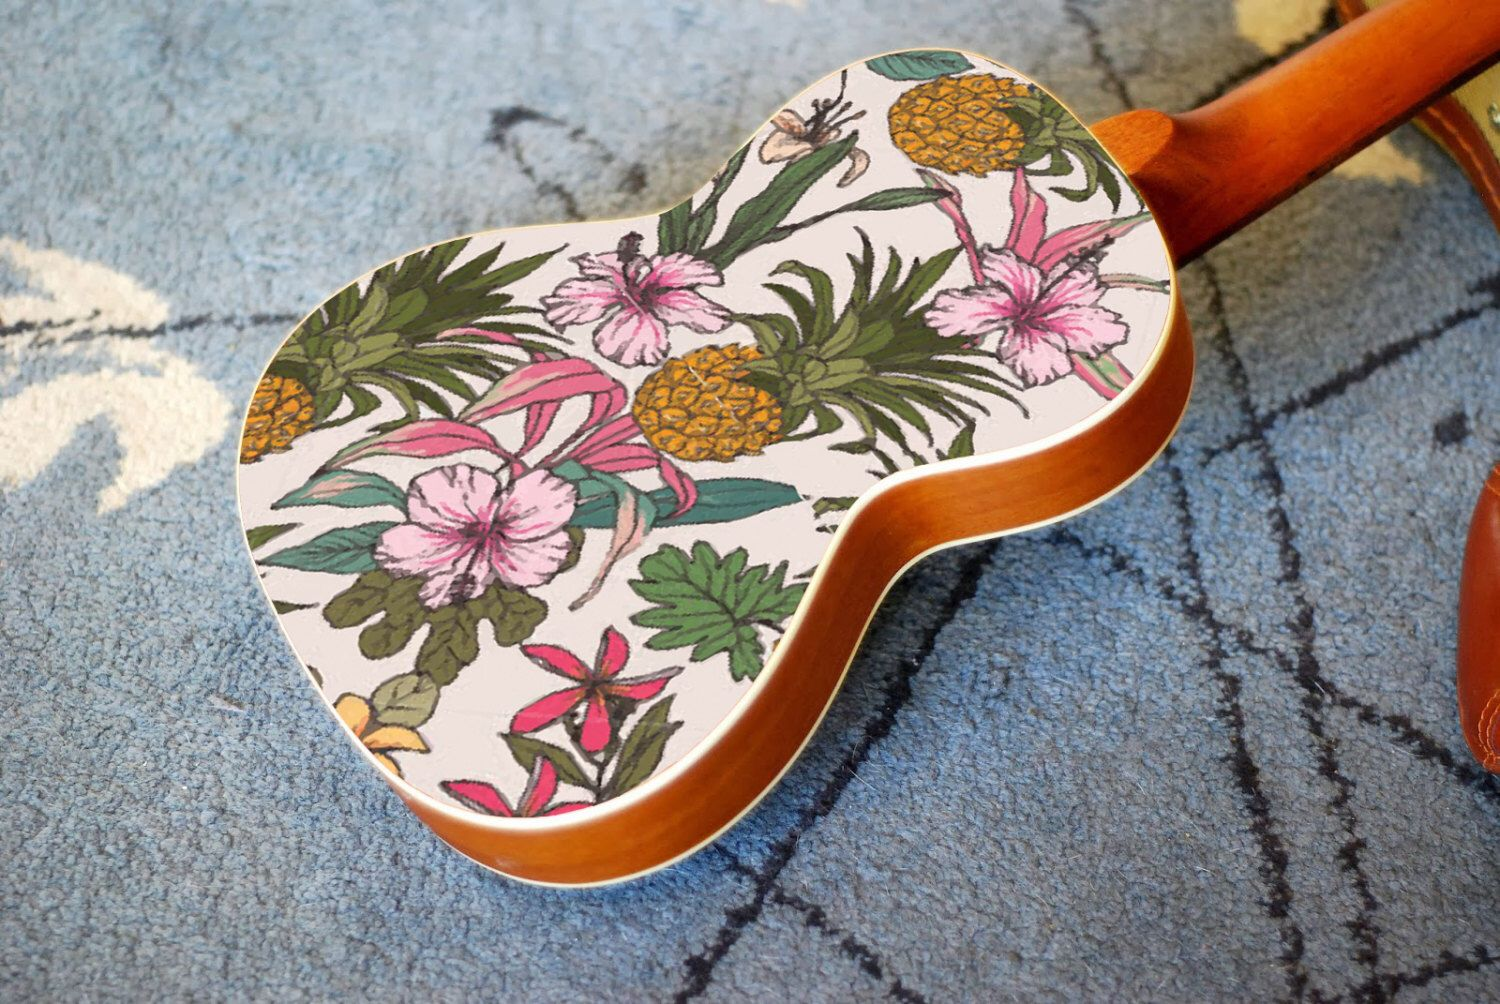 Ukulele Decal Of Vintage Flower And Pineapple Hawaiian